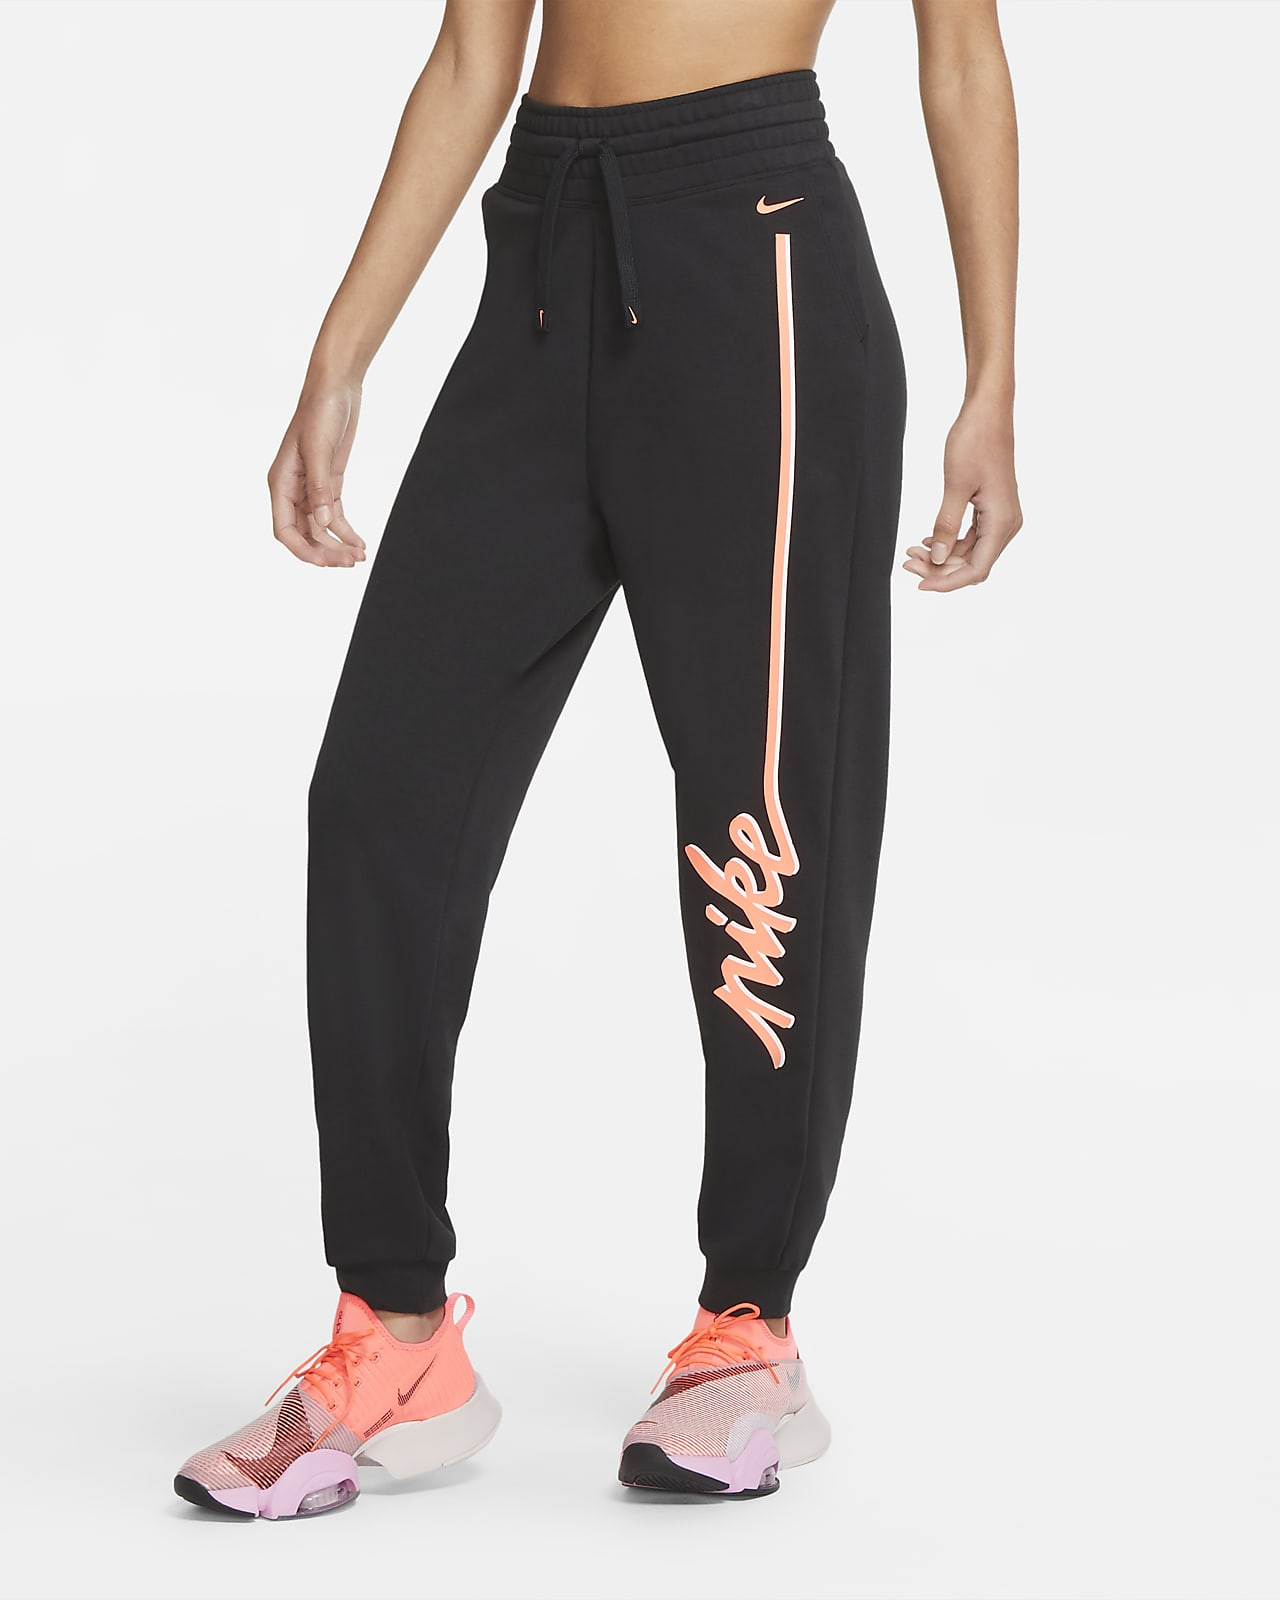 Nike Women's Training Pants